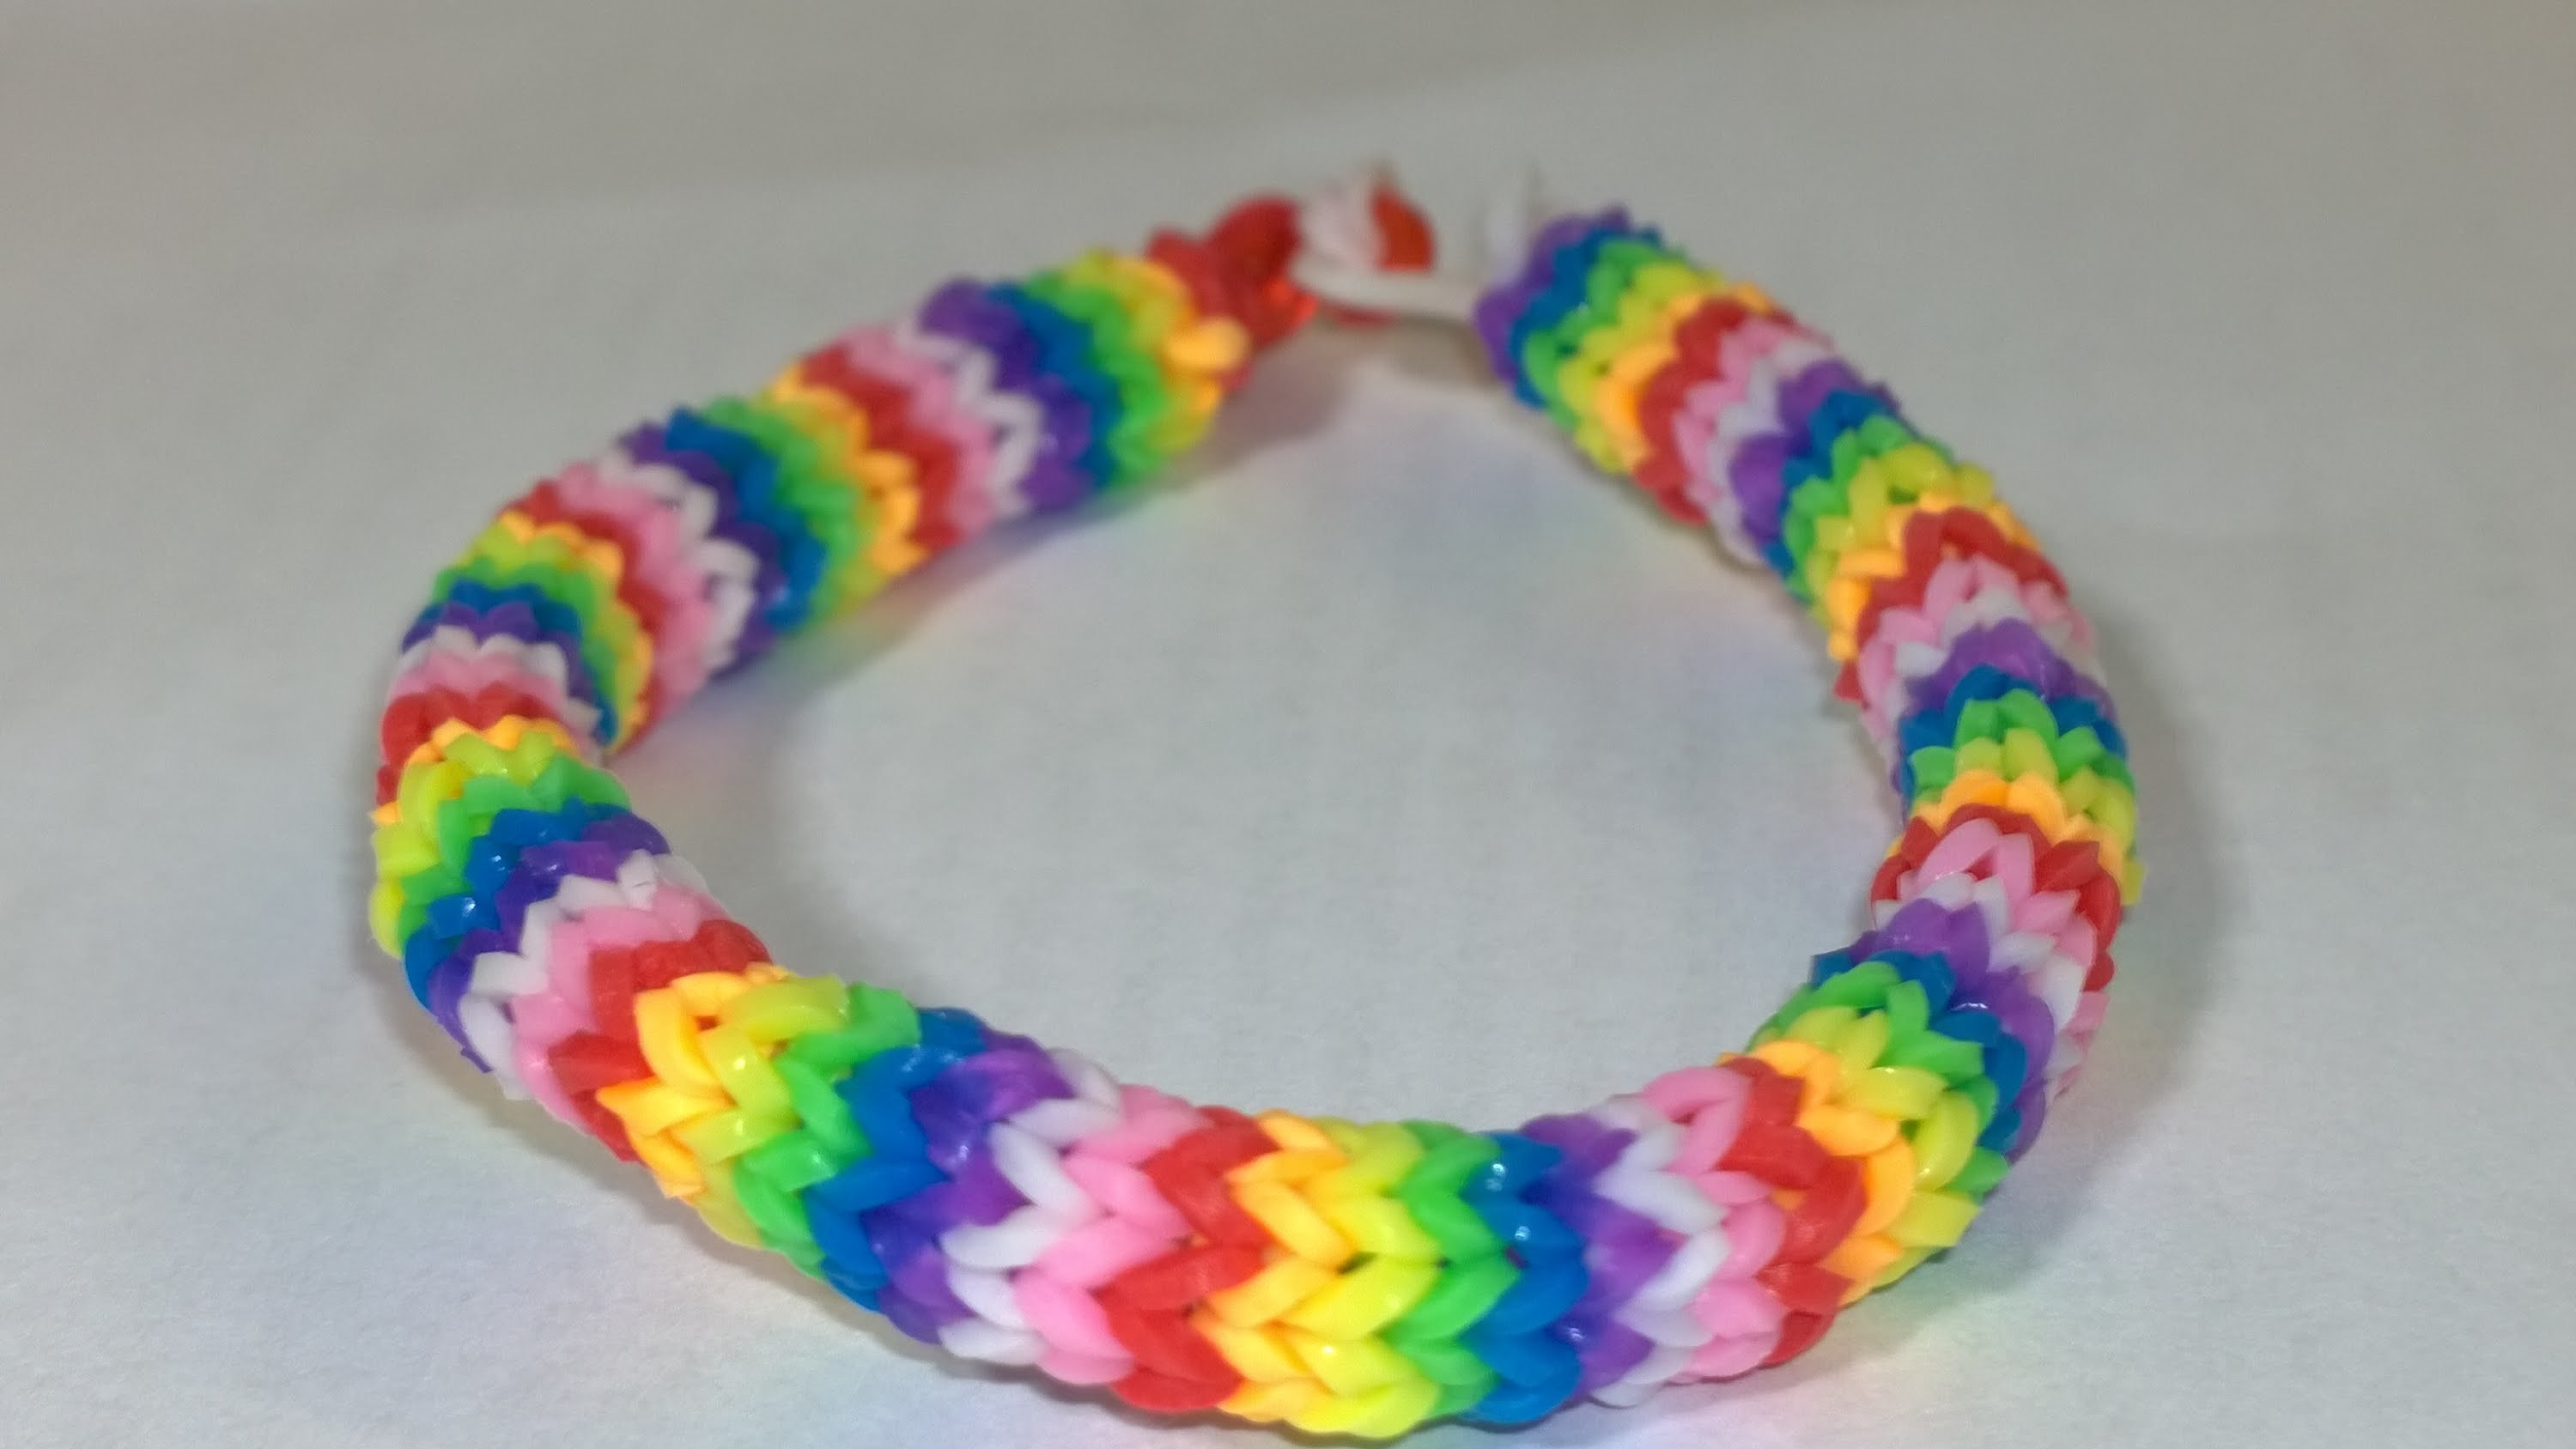 How To Make Super Easy Rainbow Loom Hexafish 6- pin Fishtail Bracelet with Two Forks! DIY